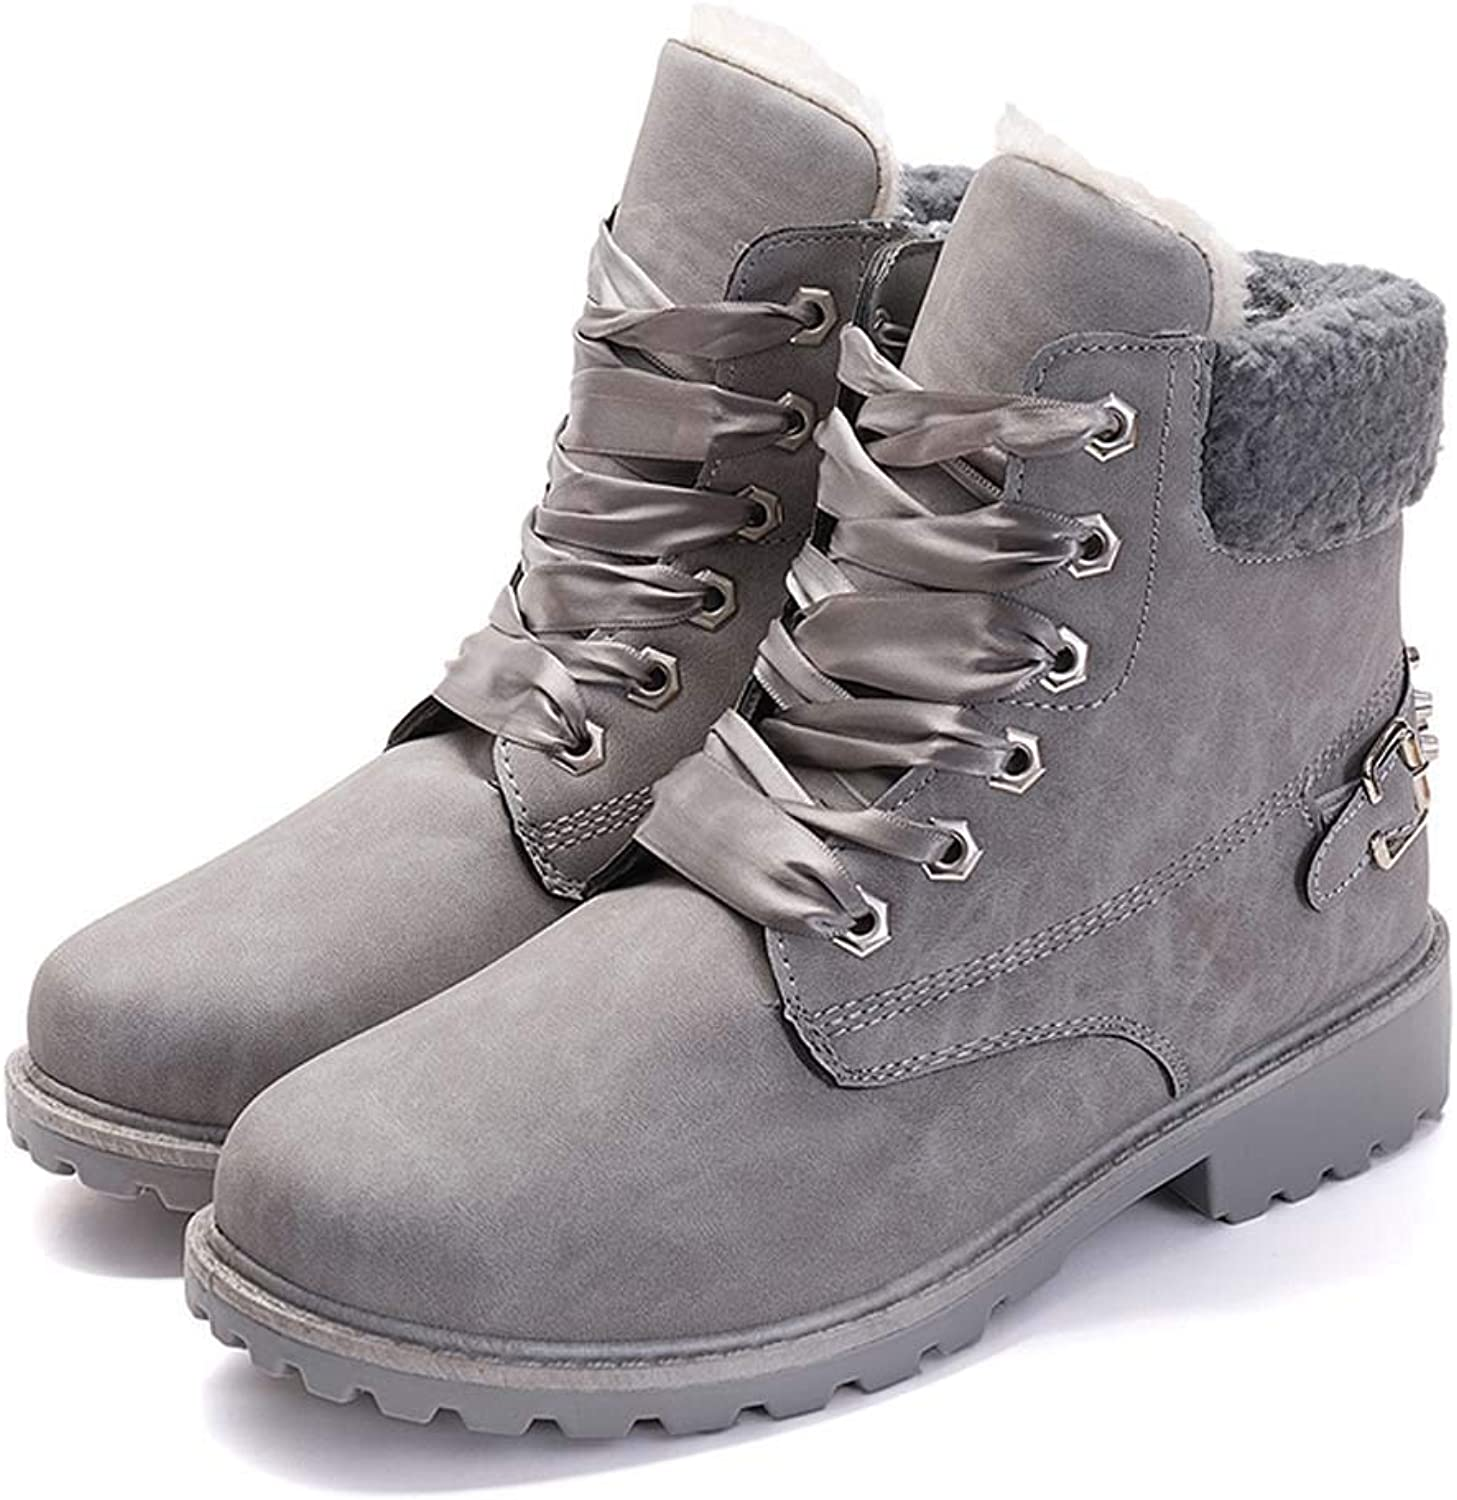 DongDong Seasonal Offers Women's Winter Lace Up Boots - Warm Suede Solid Snow Boots 2018 Casual Waterproof PU shoes